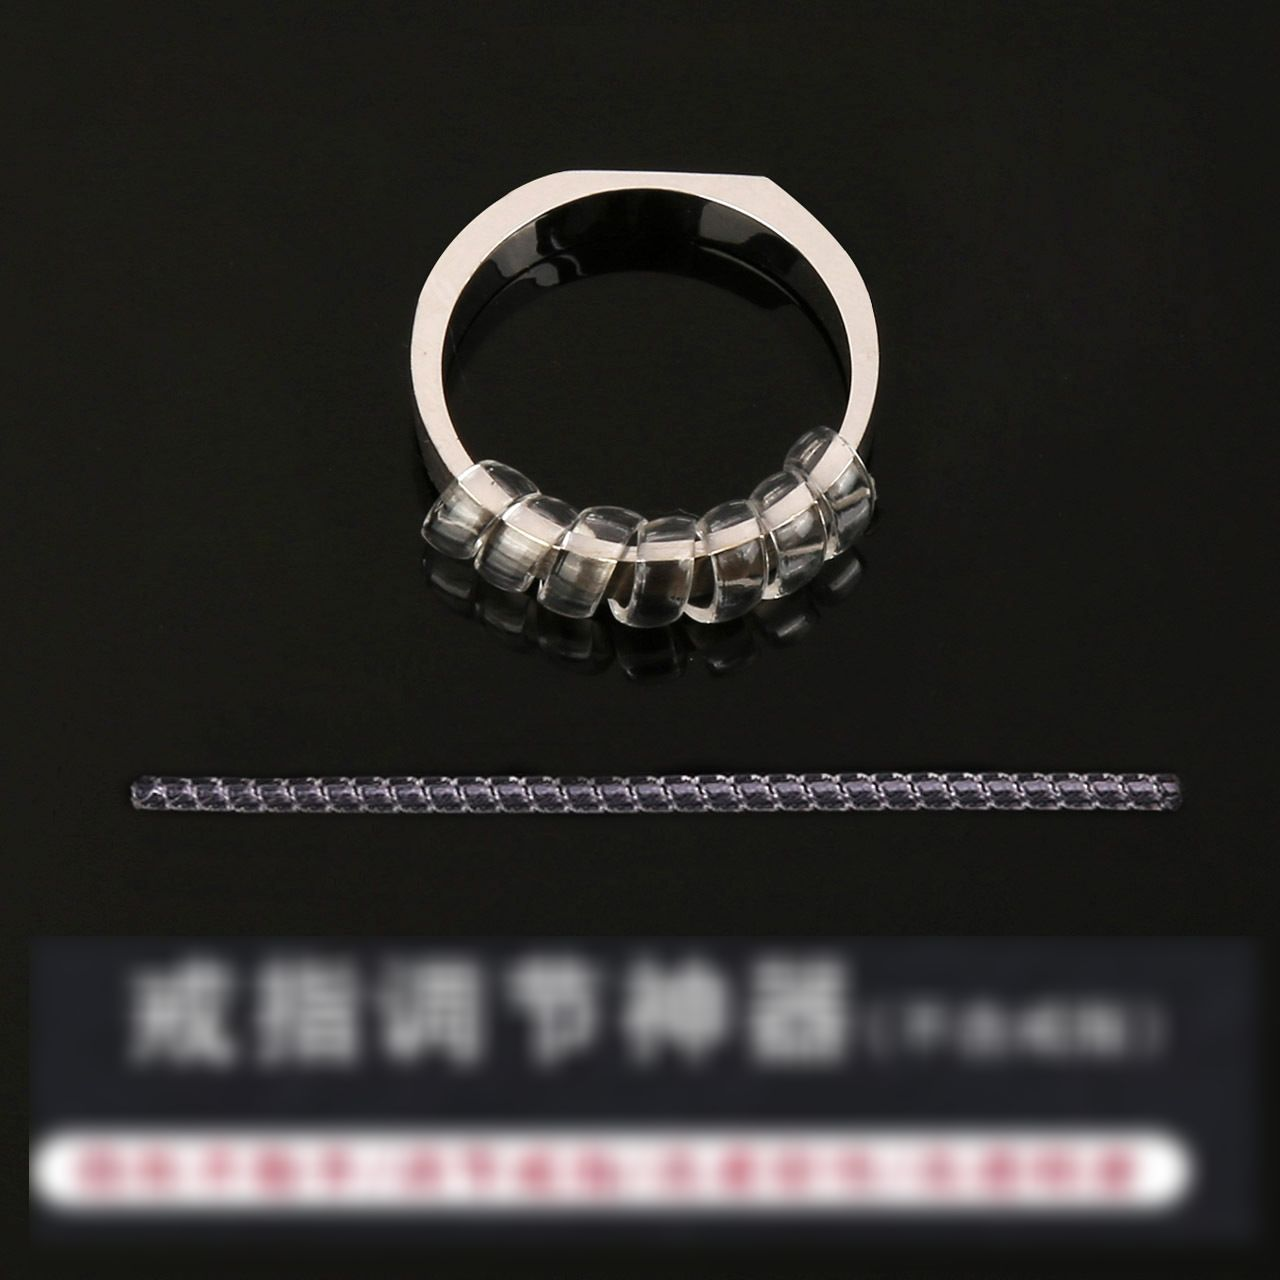 2mm to 6mm Ring Size Adjuster